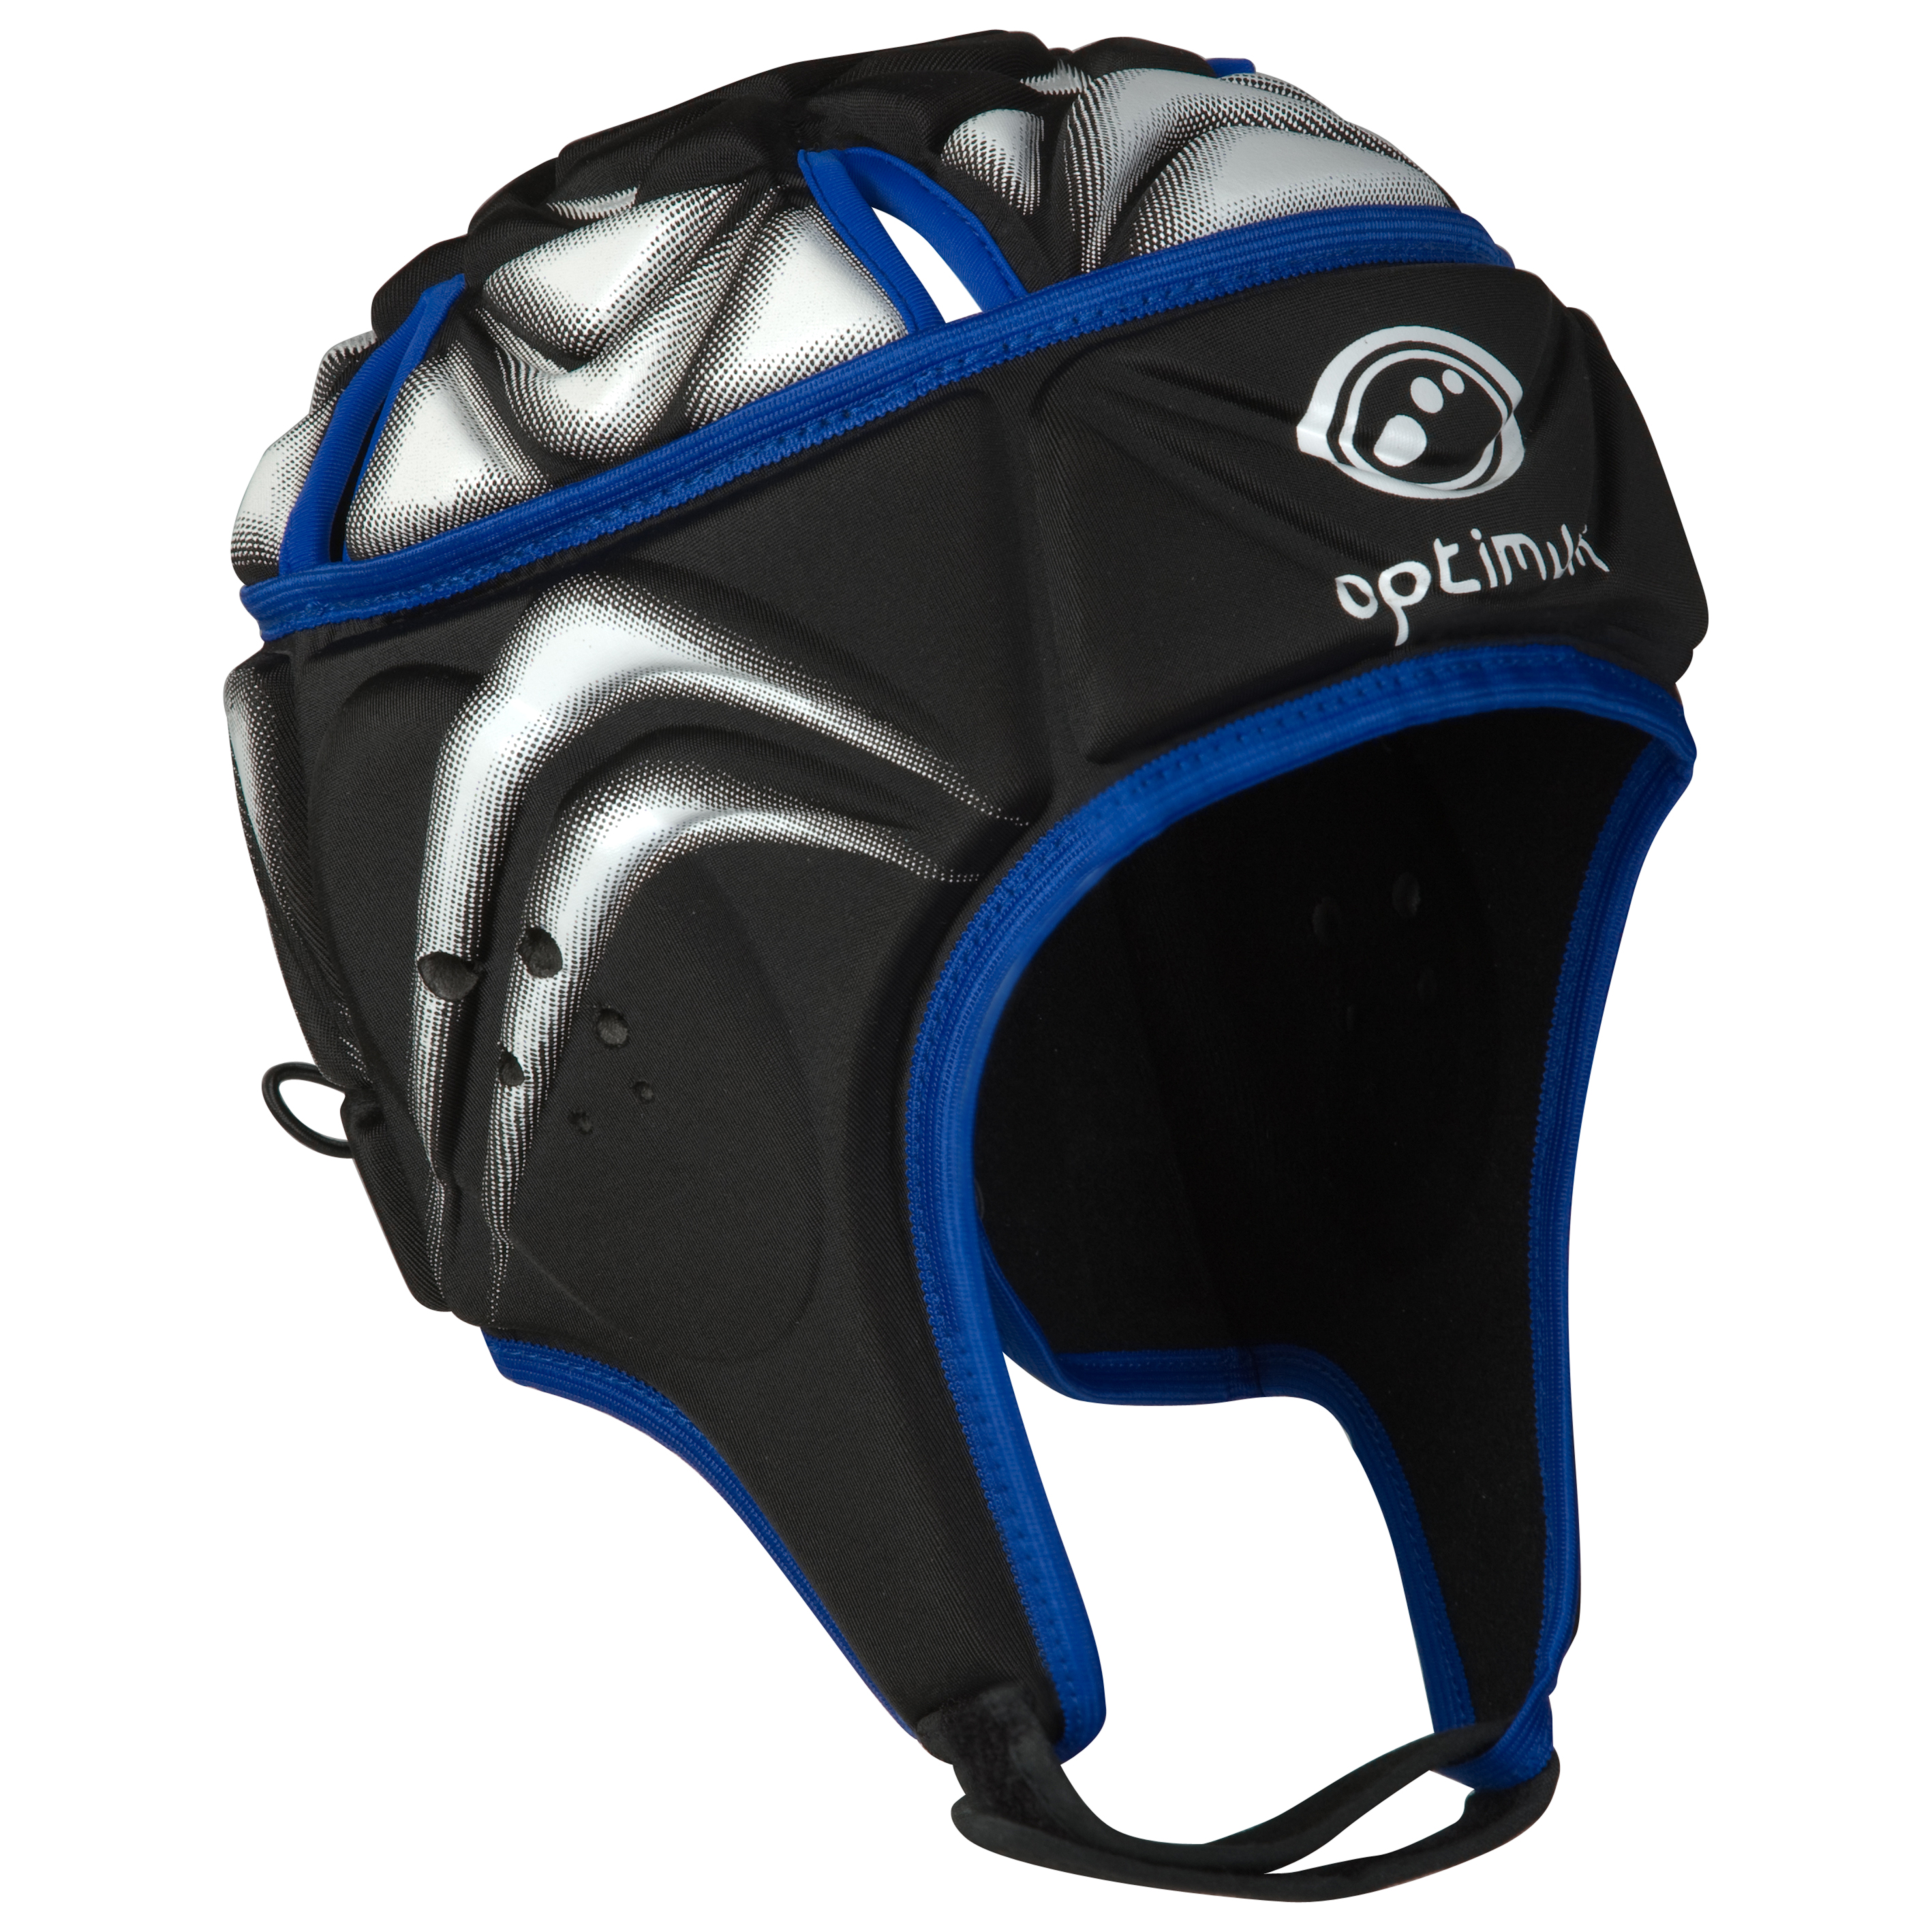 Optimum Blitz Extreme Headguard - Black/Blue